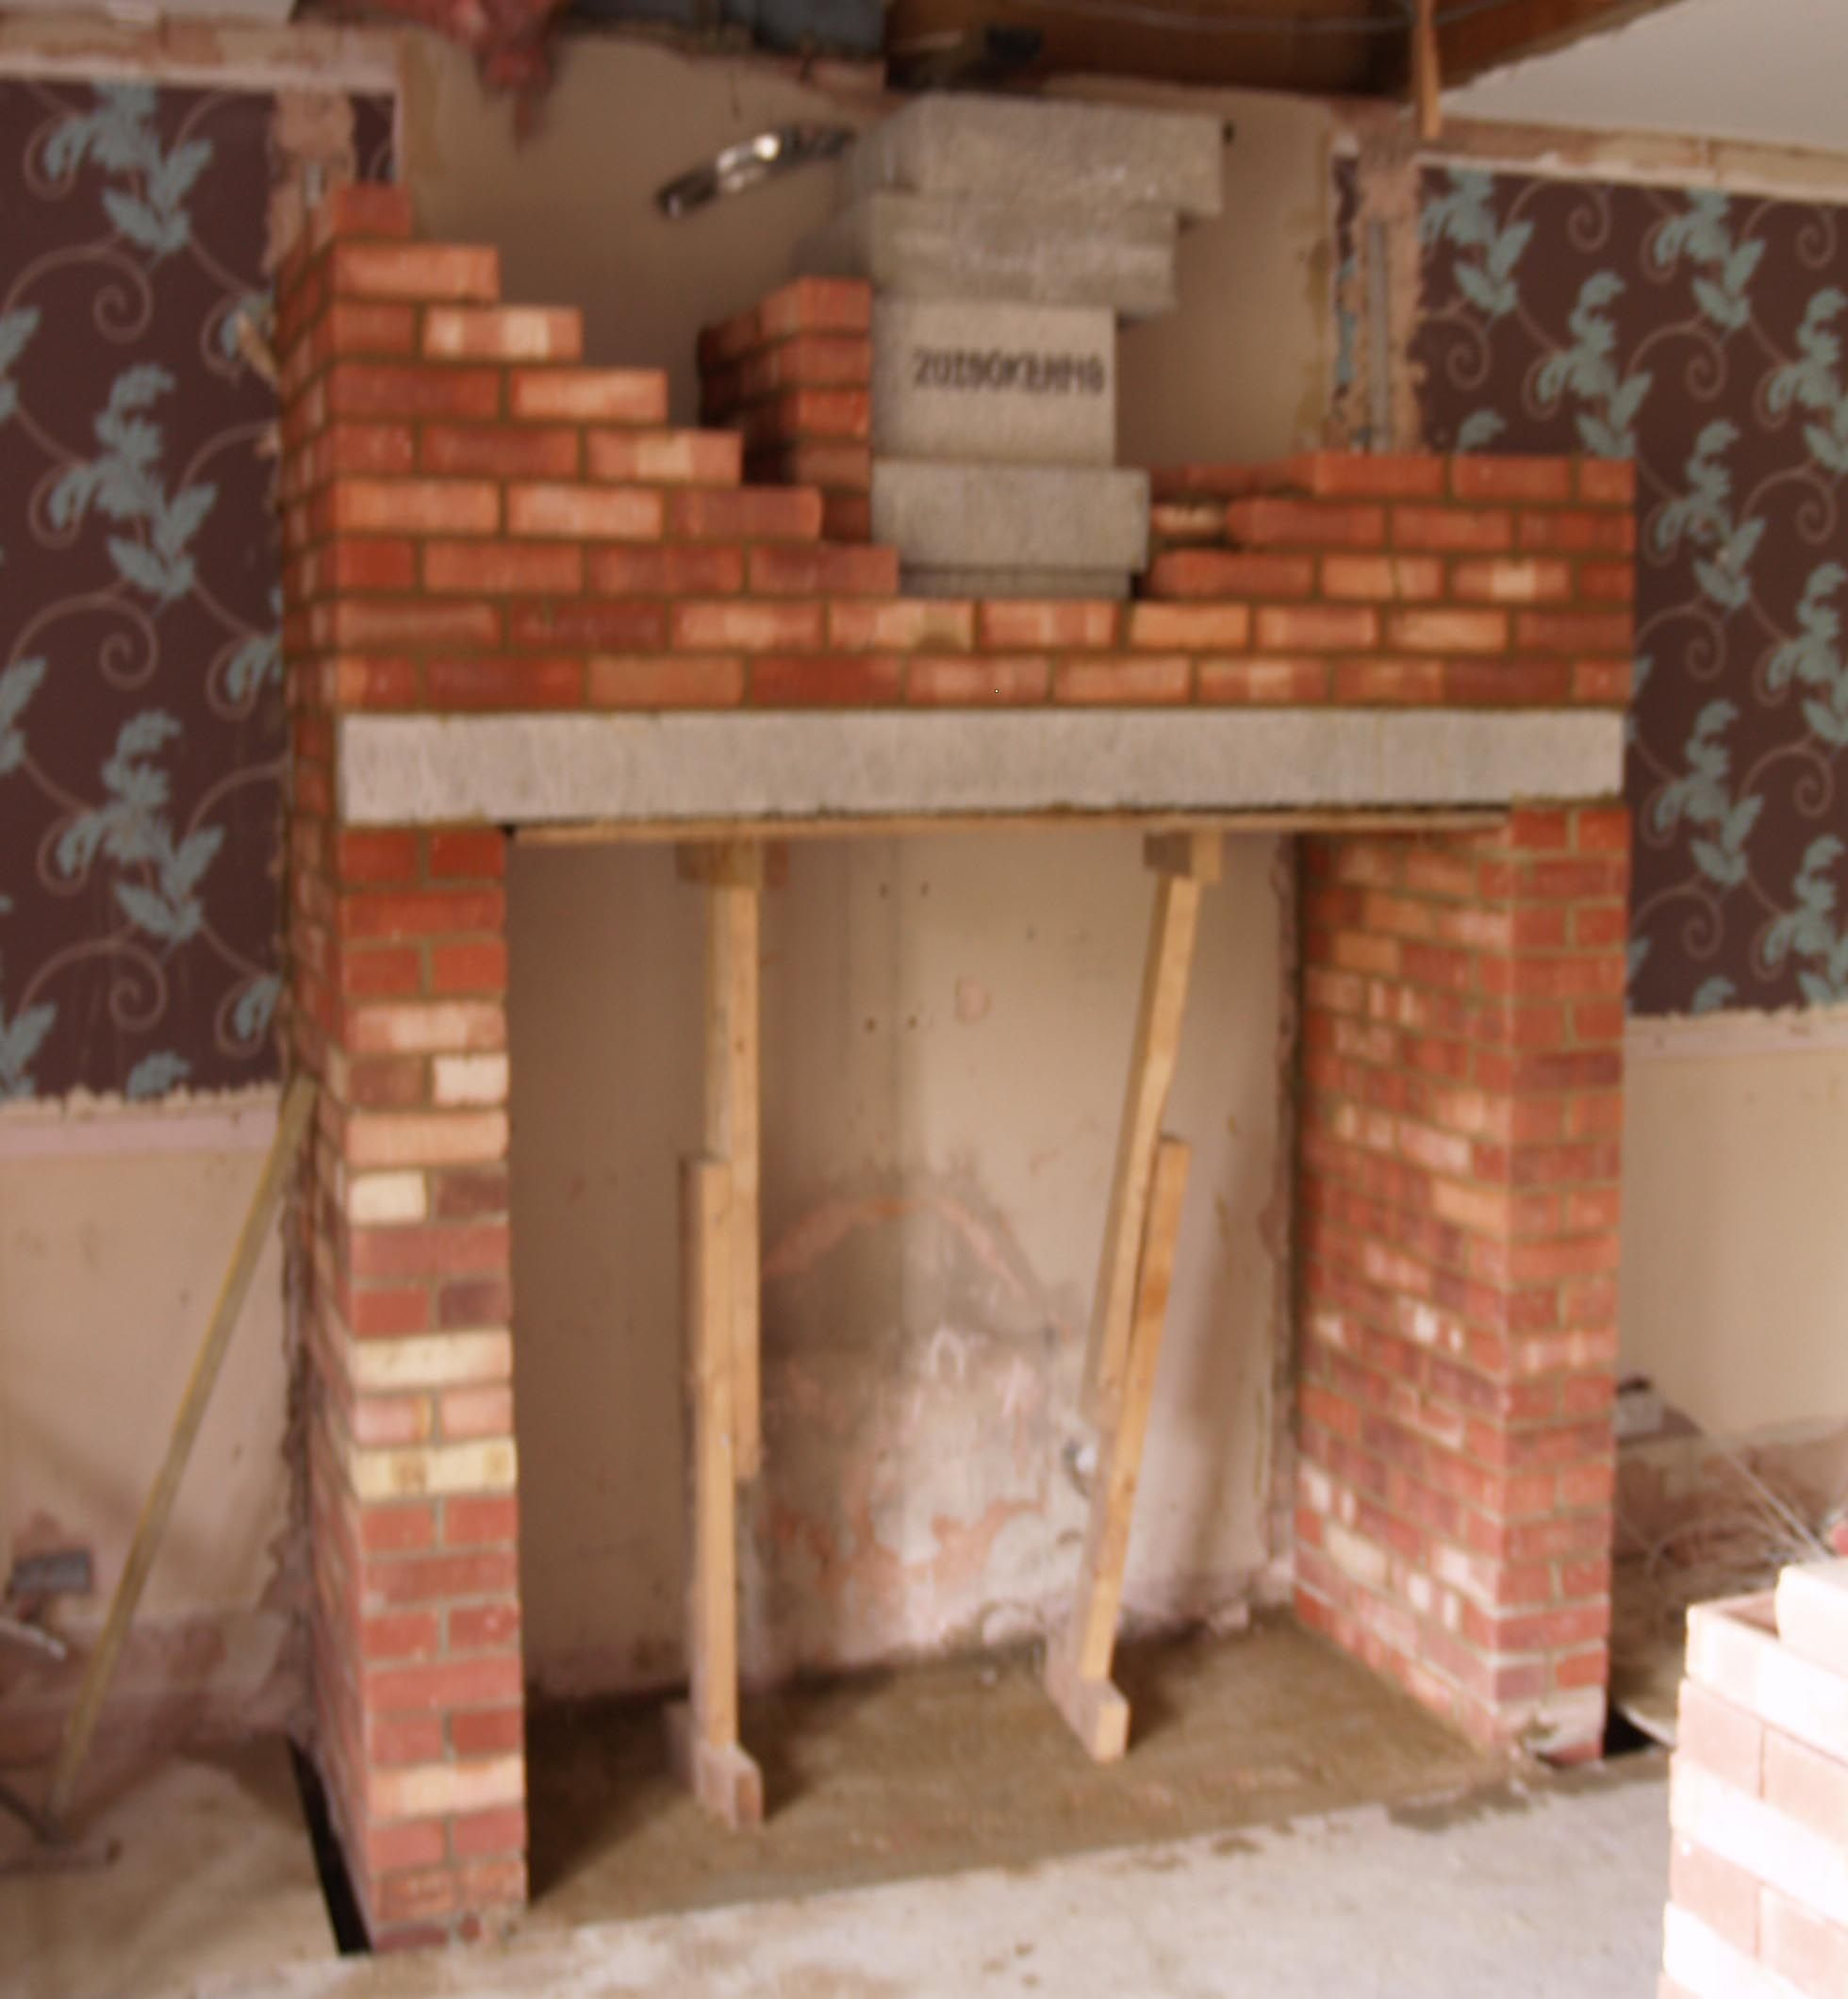 Wood Fireplace Construction New Chimney Build Using Anki Pumice Liners For A Wood